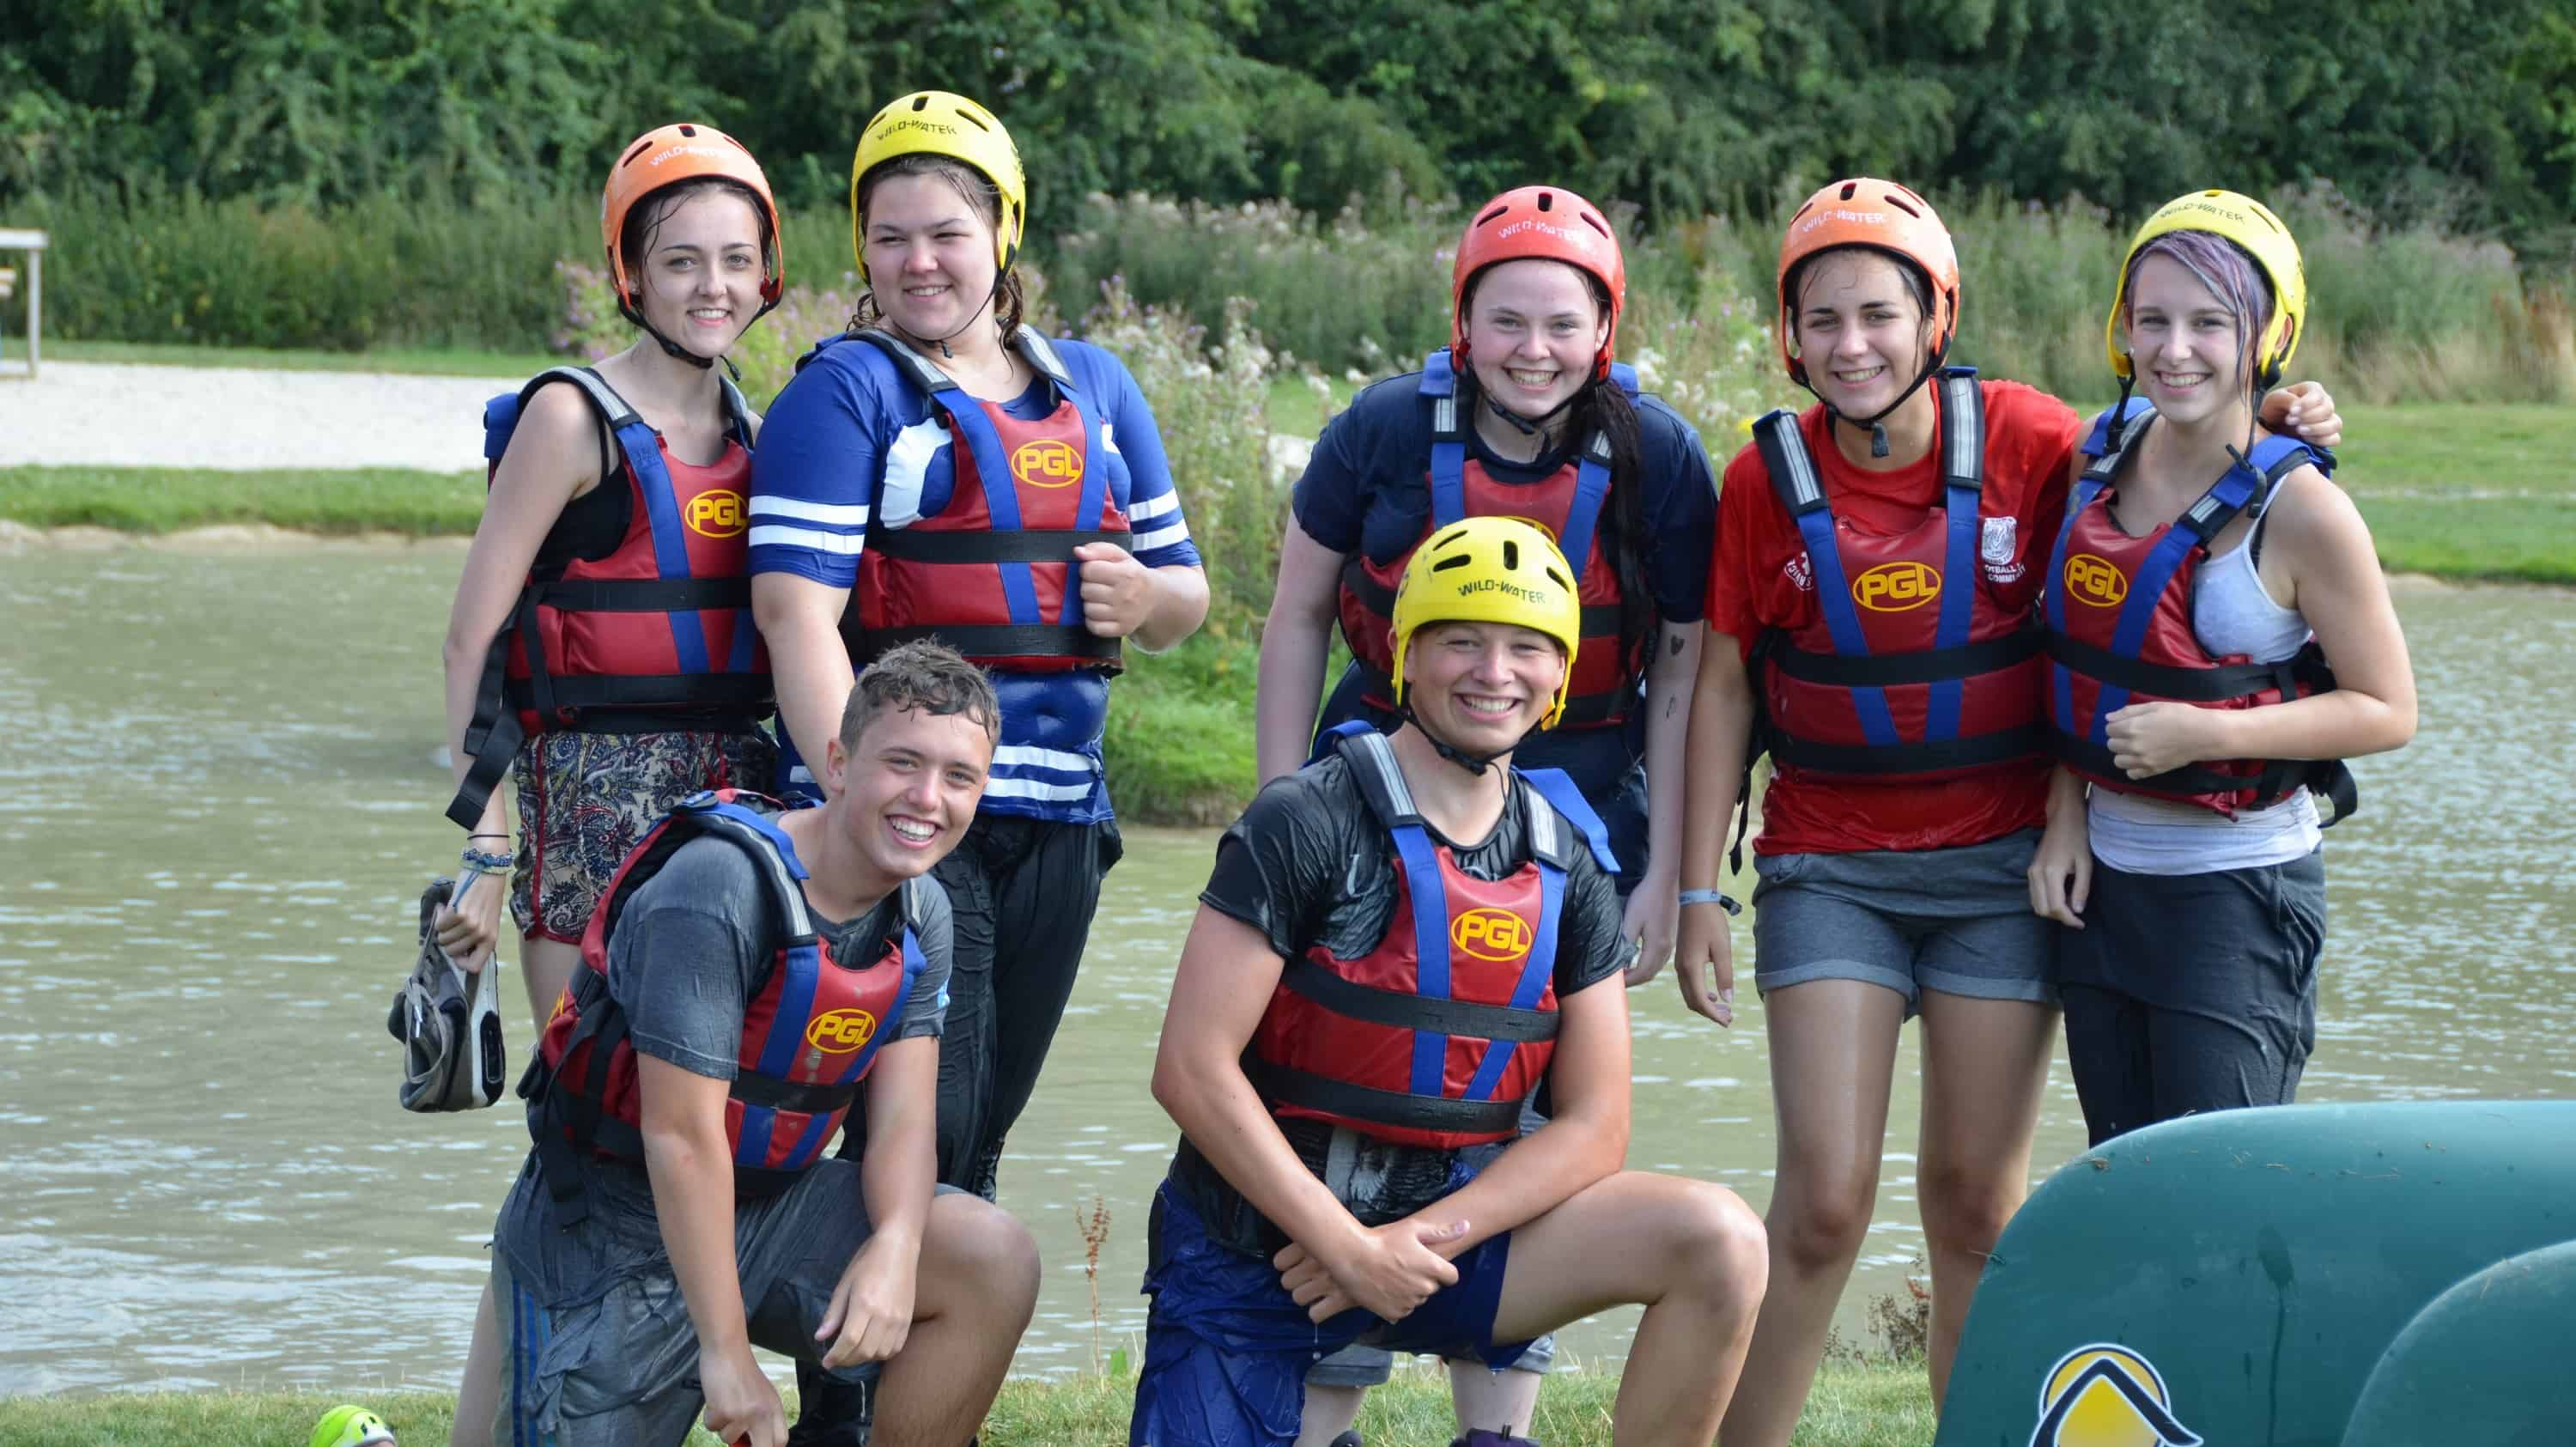 Enjoy The Perfect Summer With The Ncs Aldershot Town Fc